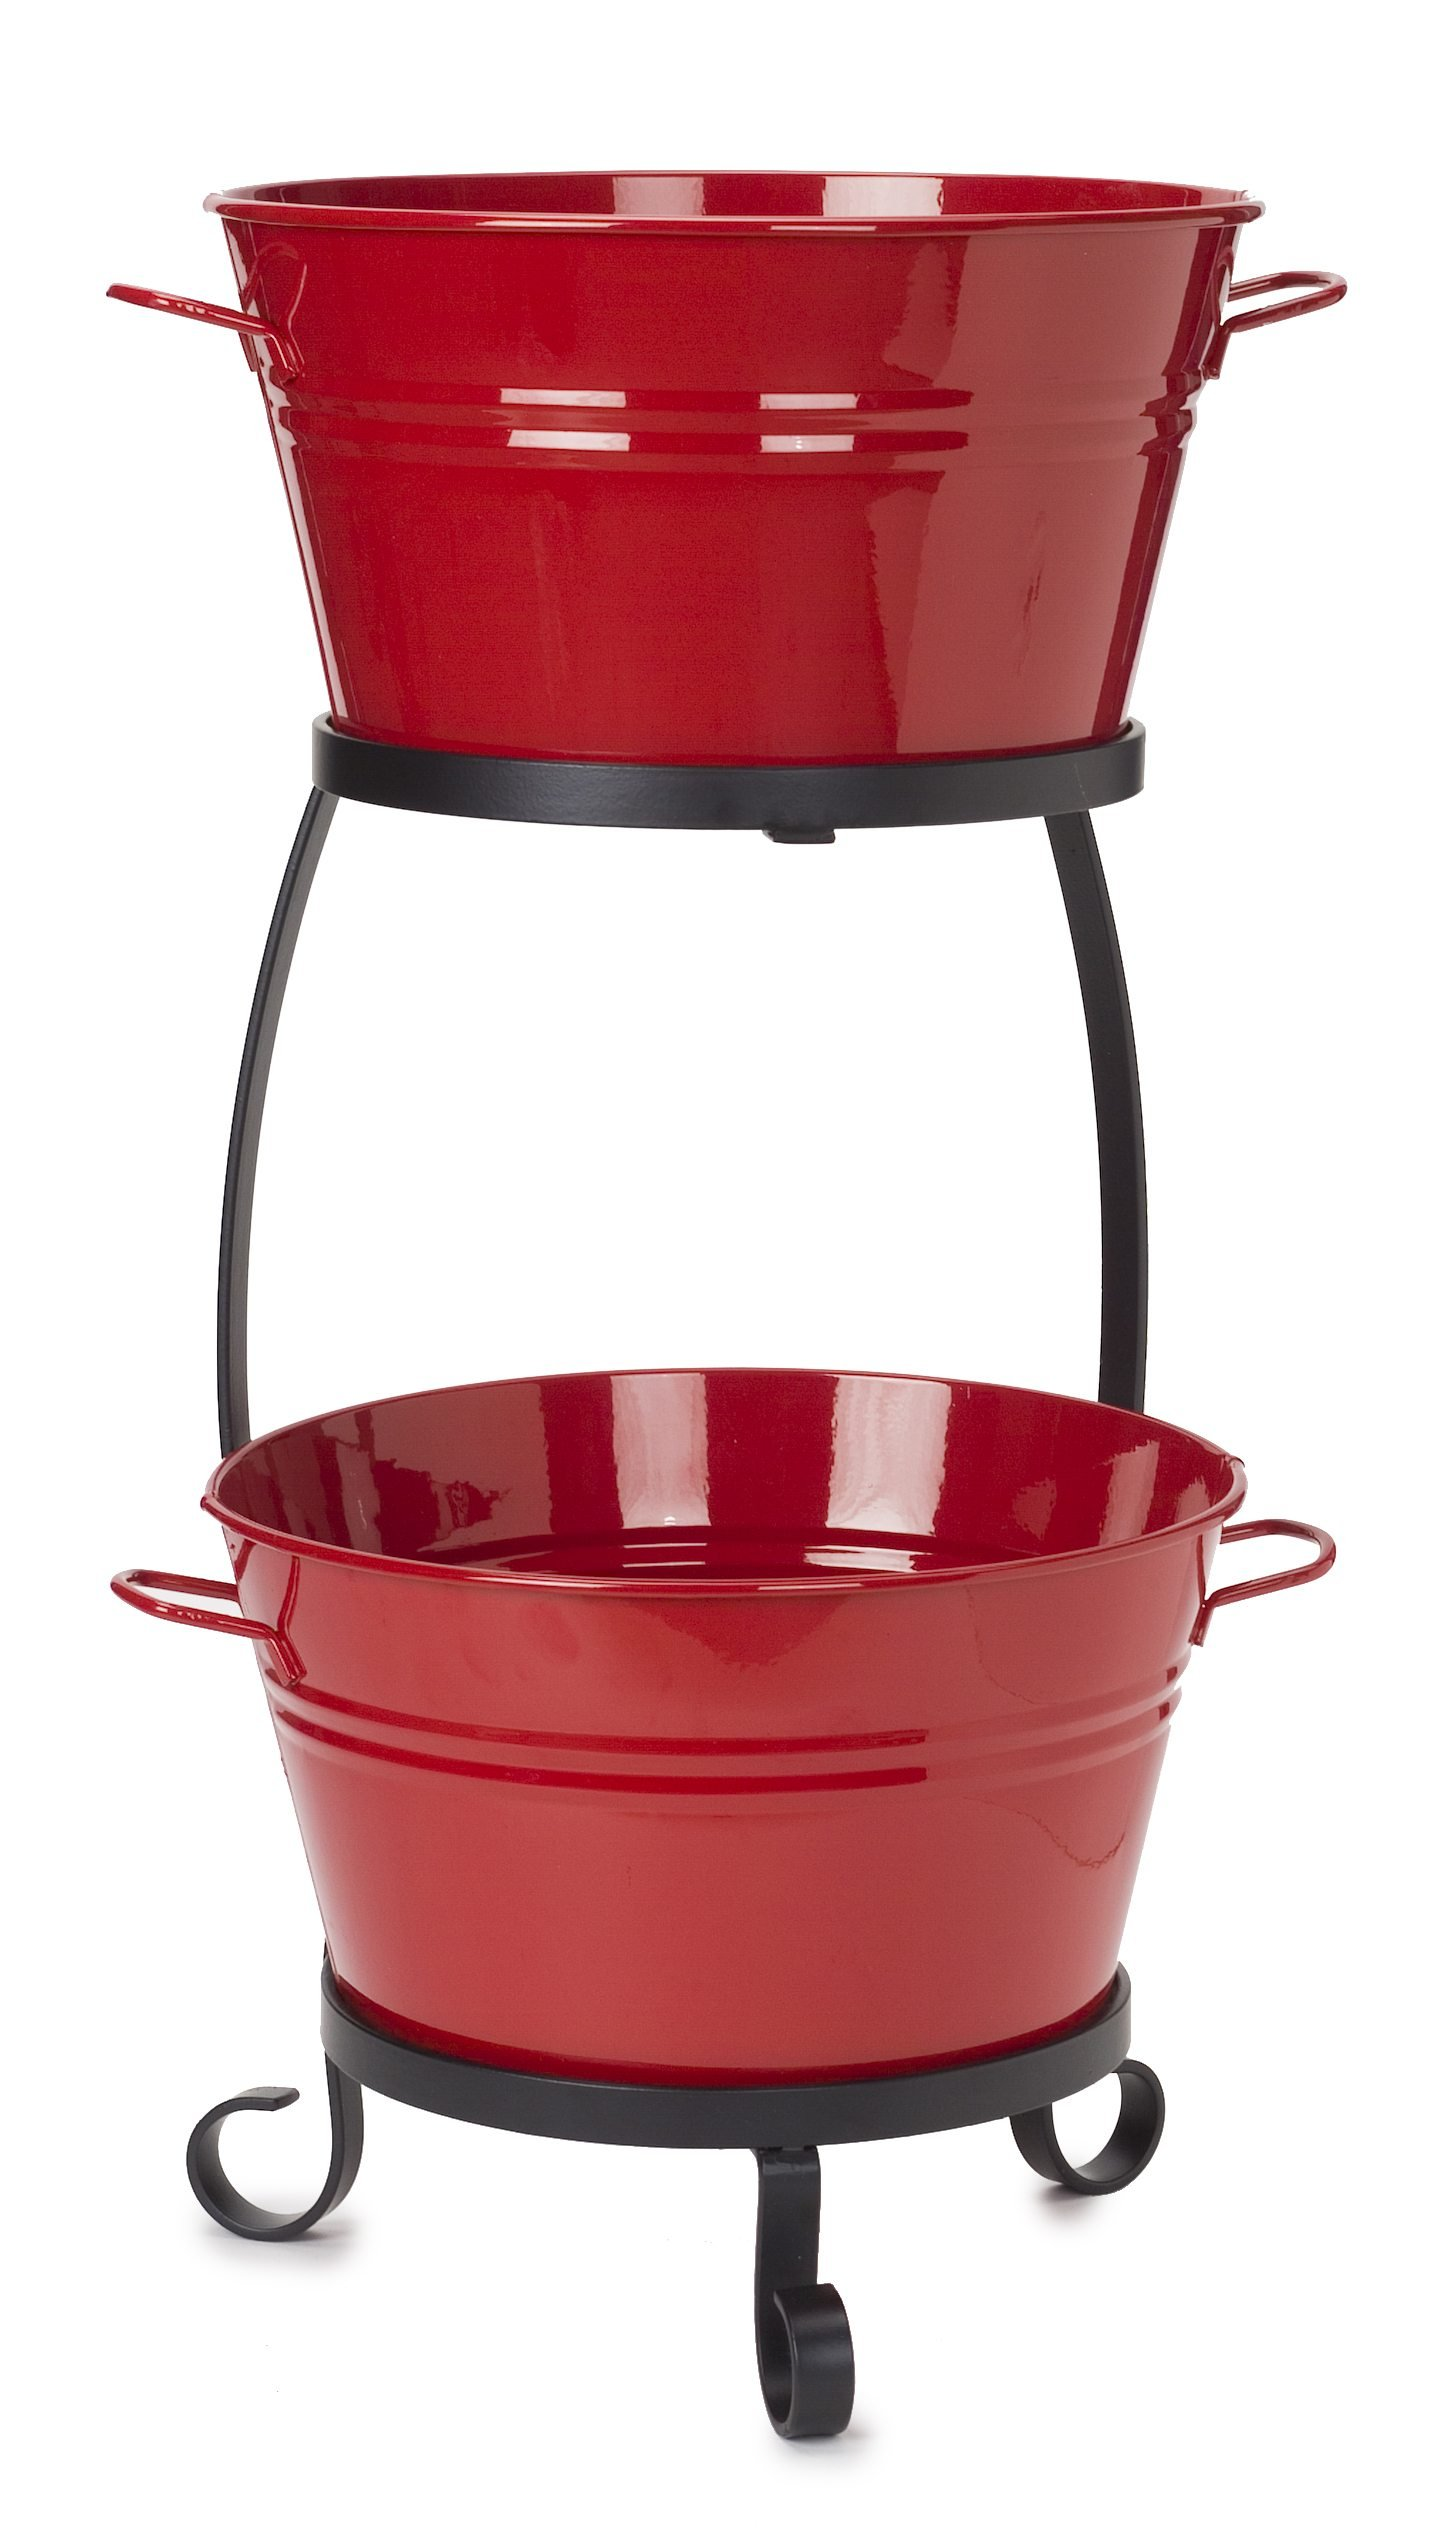 HIT Corp. 8020E XR Enamels Galvanized Double Beverage tub with Iron Stand, RED by HIT Corp.